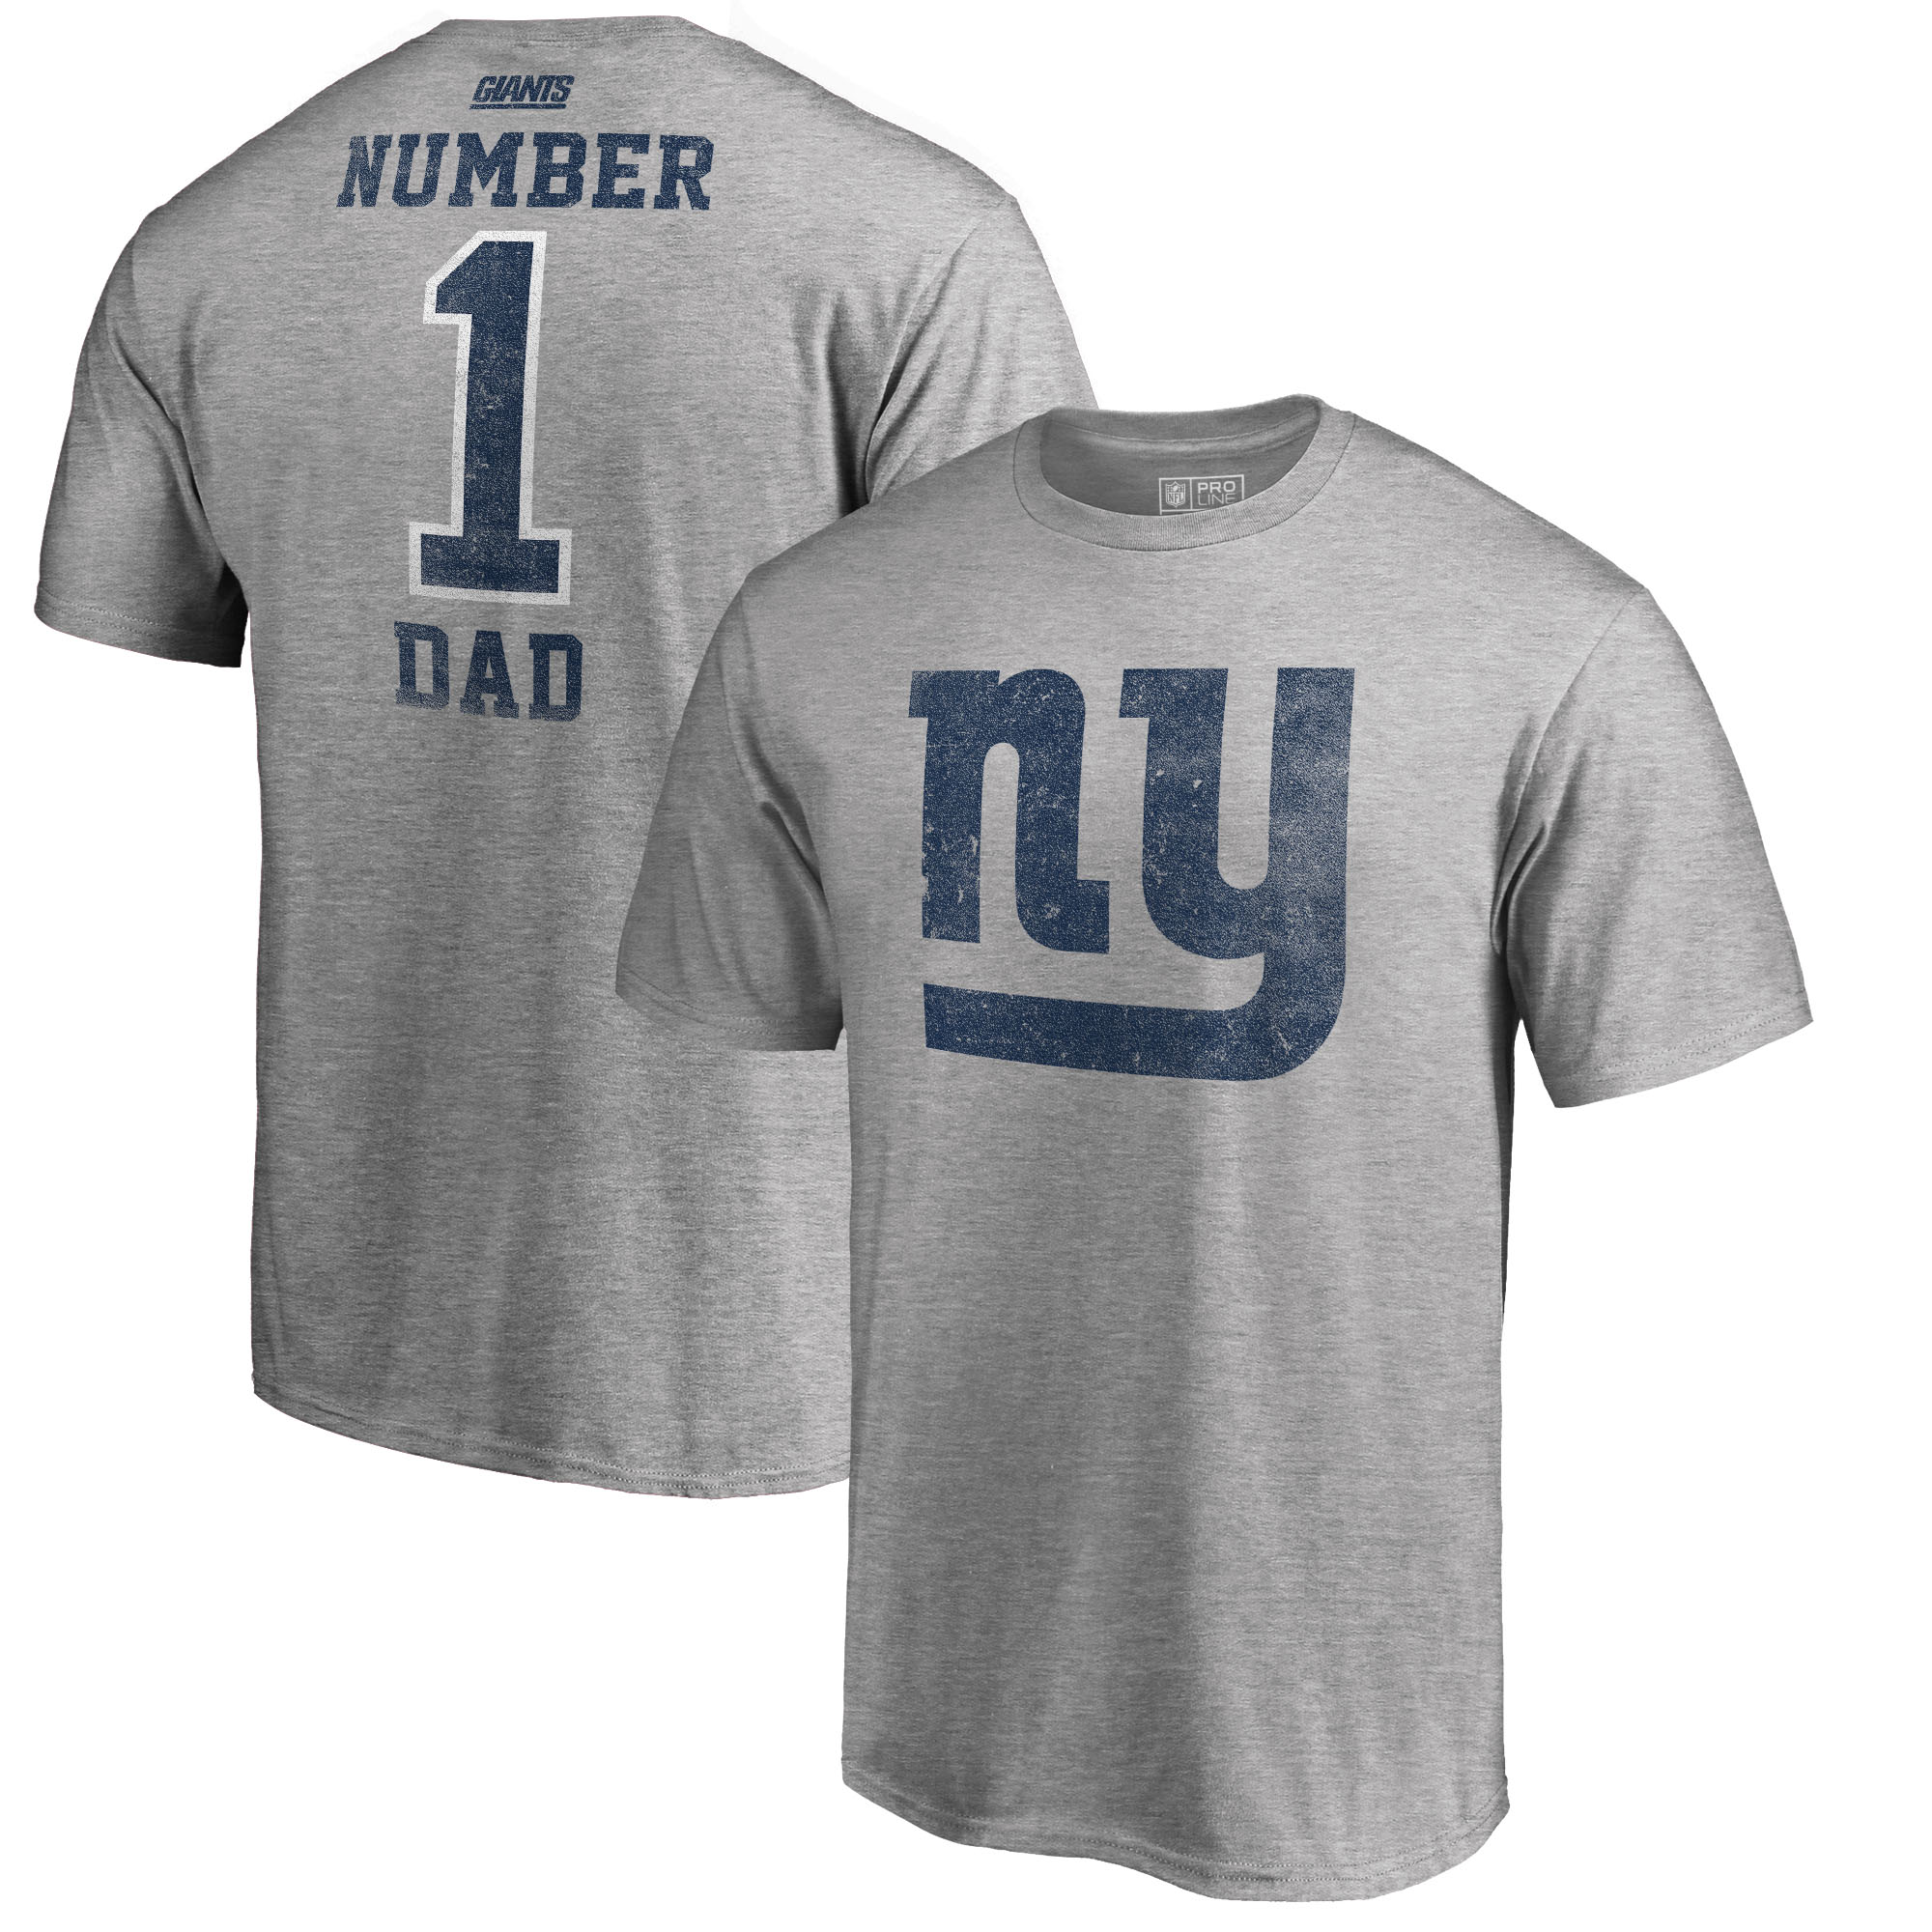 New York Giants NFL Pro Line by Fanatics Branded Big and Tall Greatest Dad Retro Tri-Blend T-Shirt - Heathered Gray